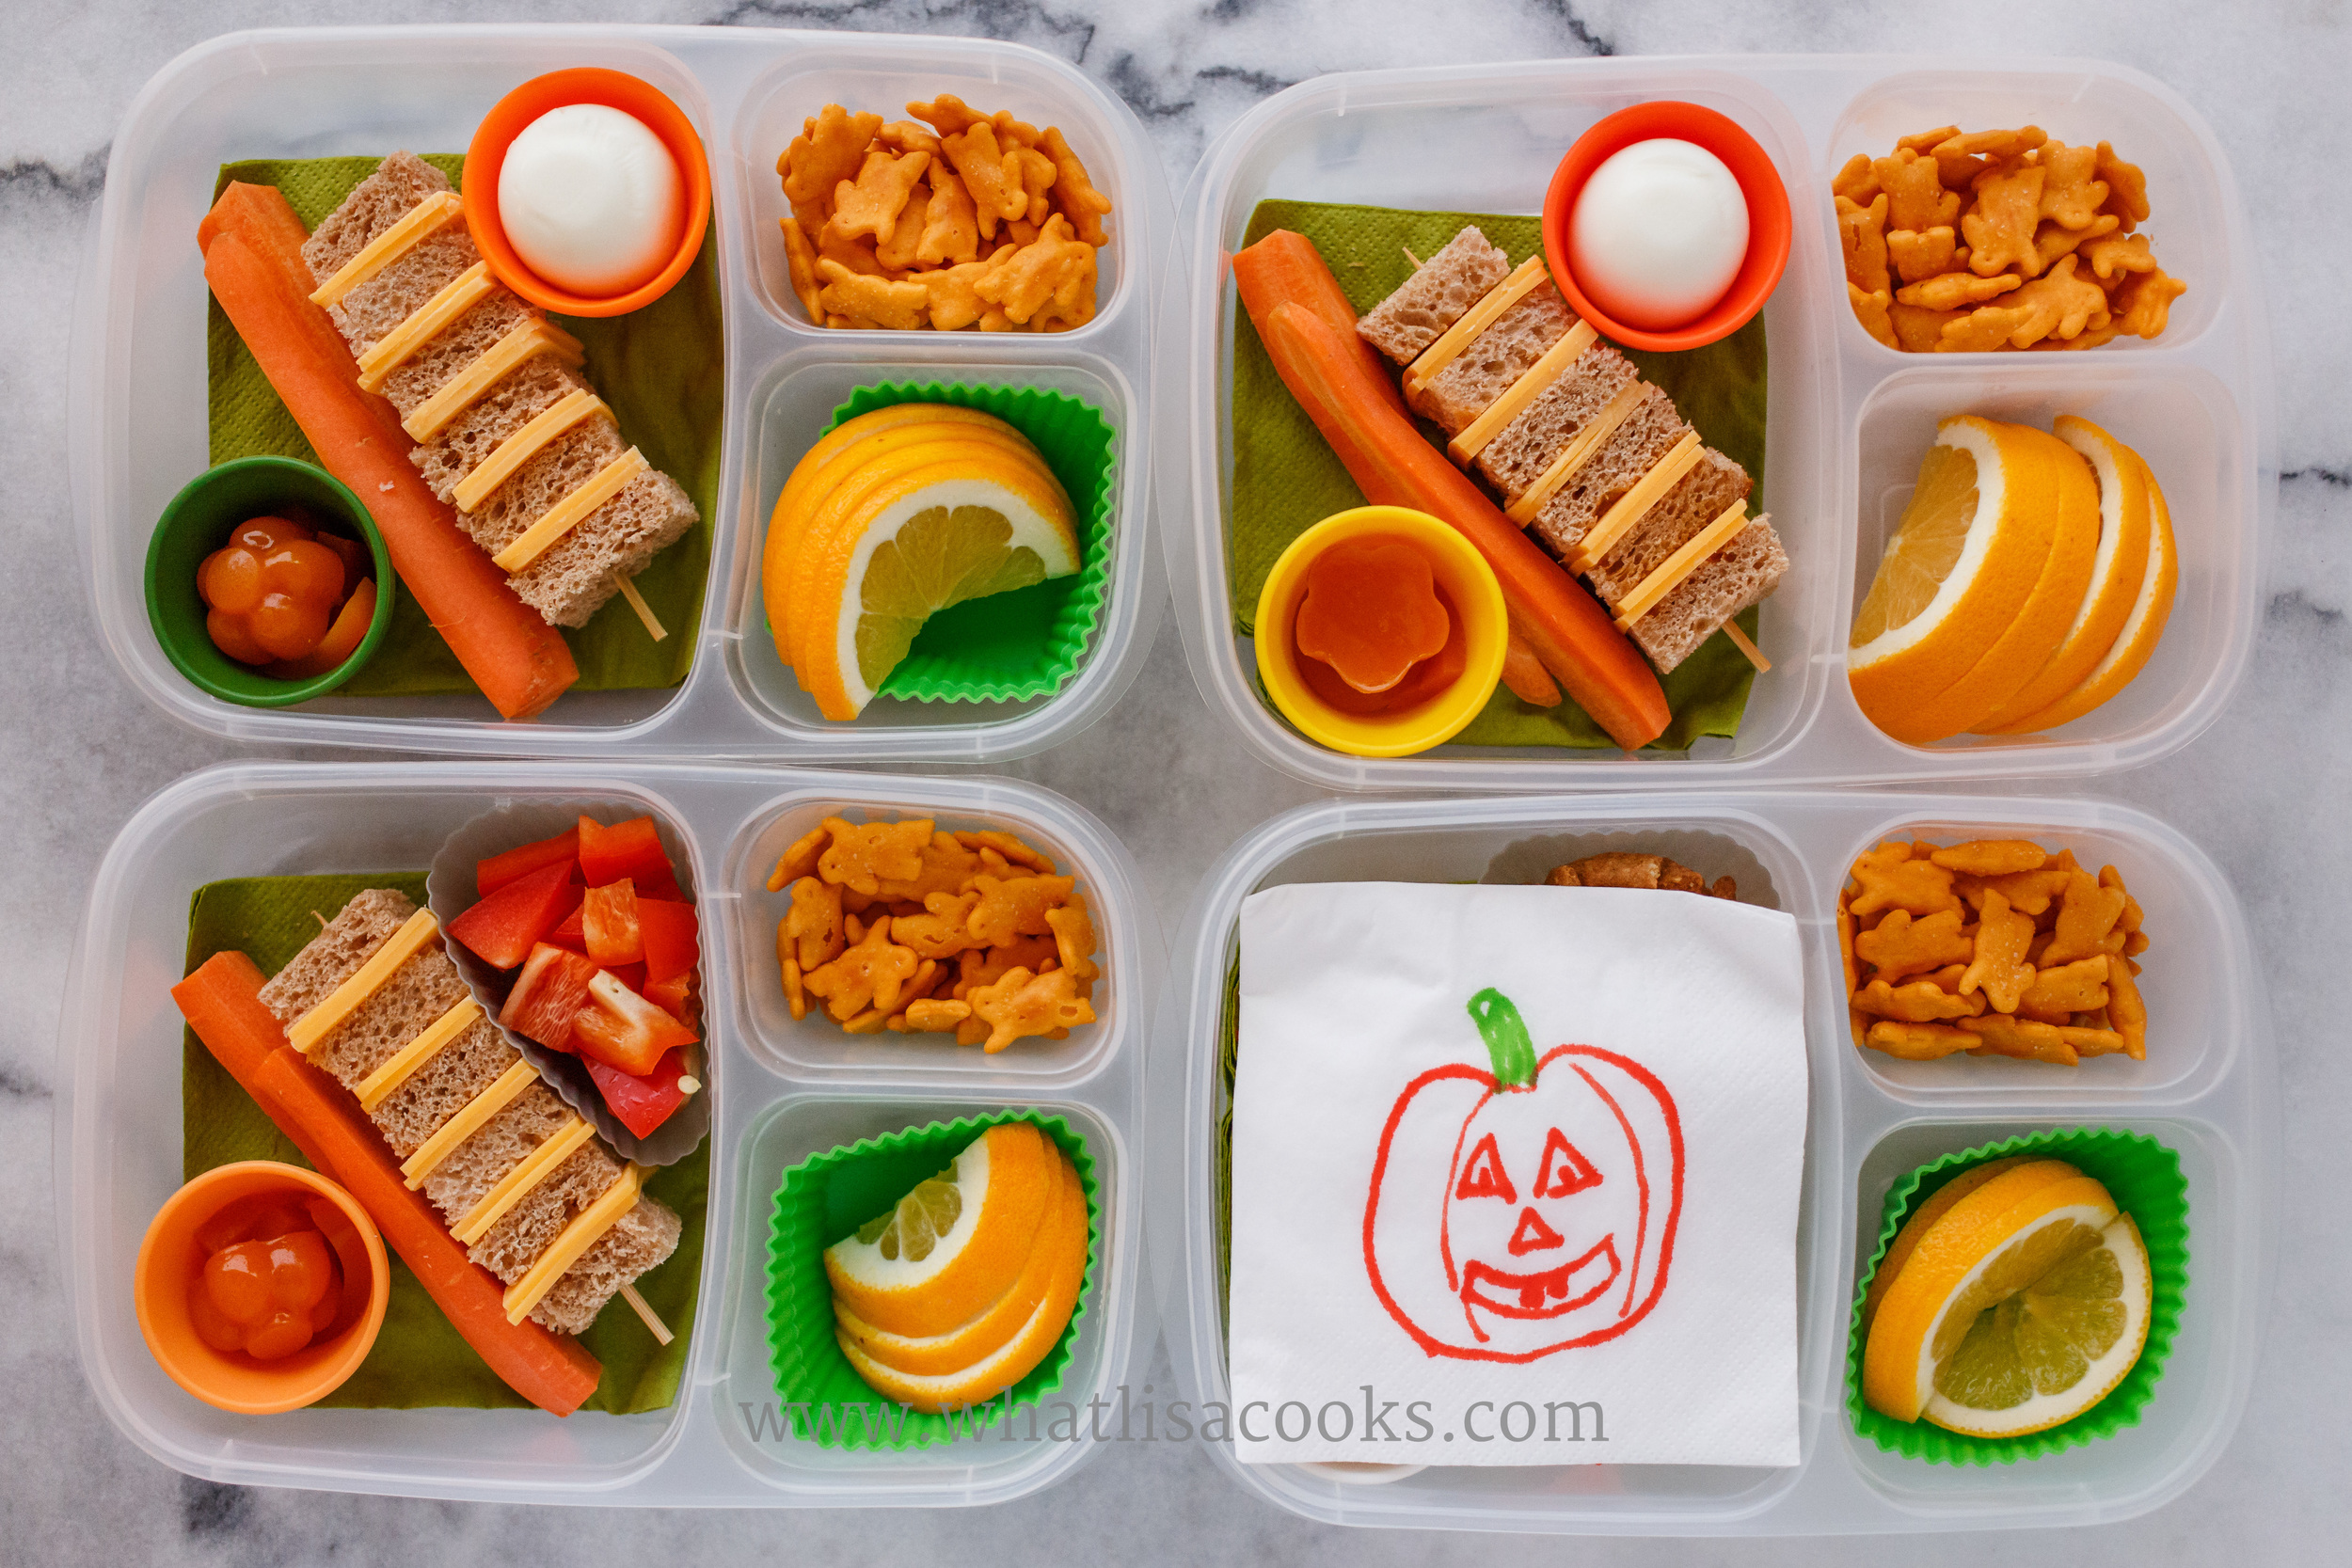 A very quick and simple Halloween lunch of all orange foods. Cheddar cheese mini sandwiches on a skewer, carrots, oranges, cheddar bunnies, and orange gel gummies.